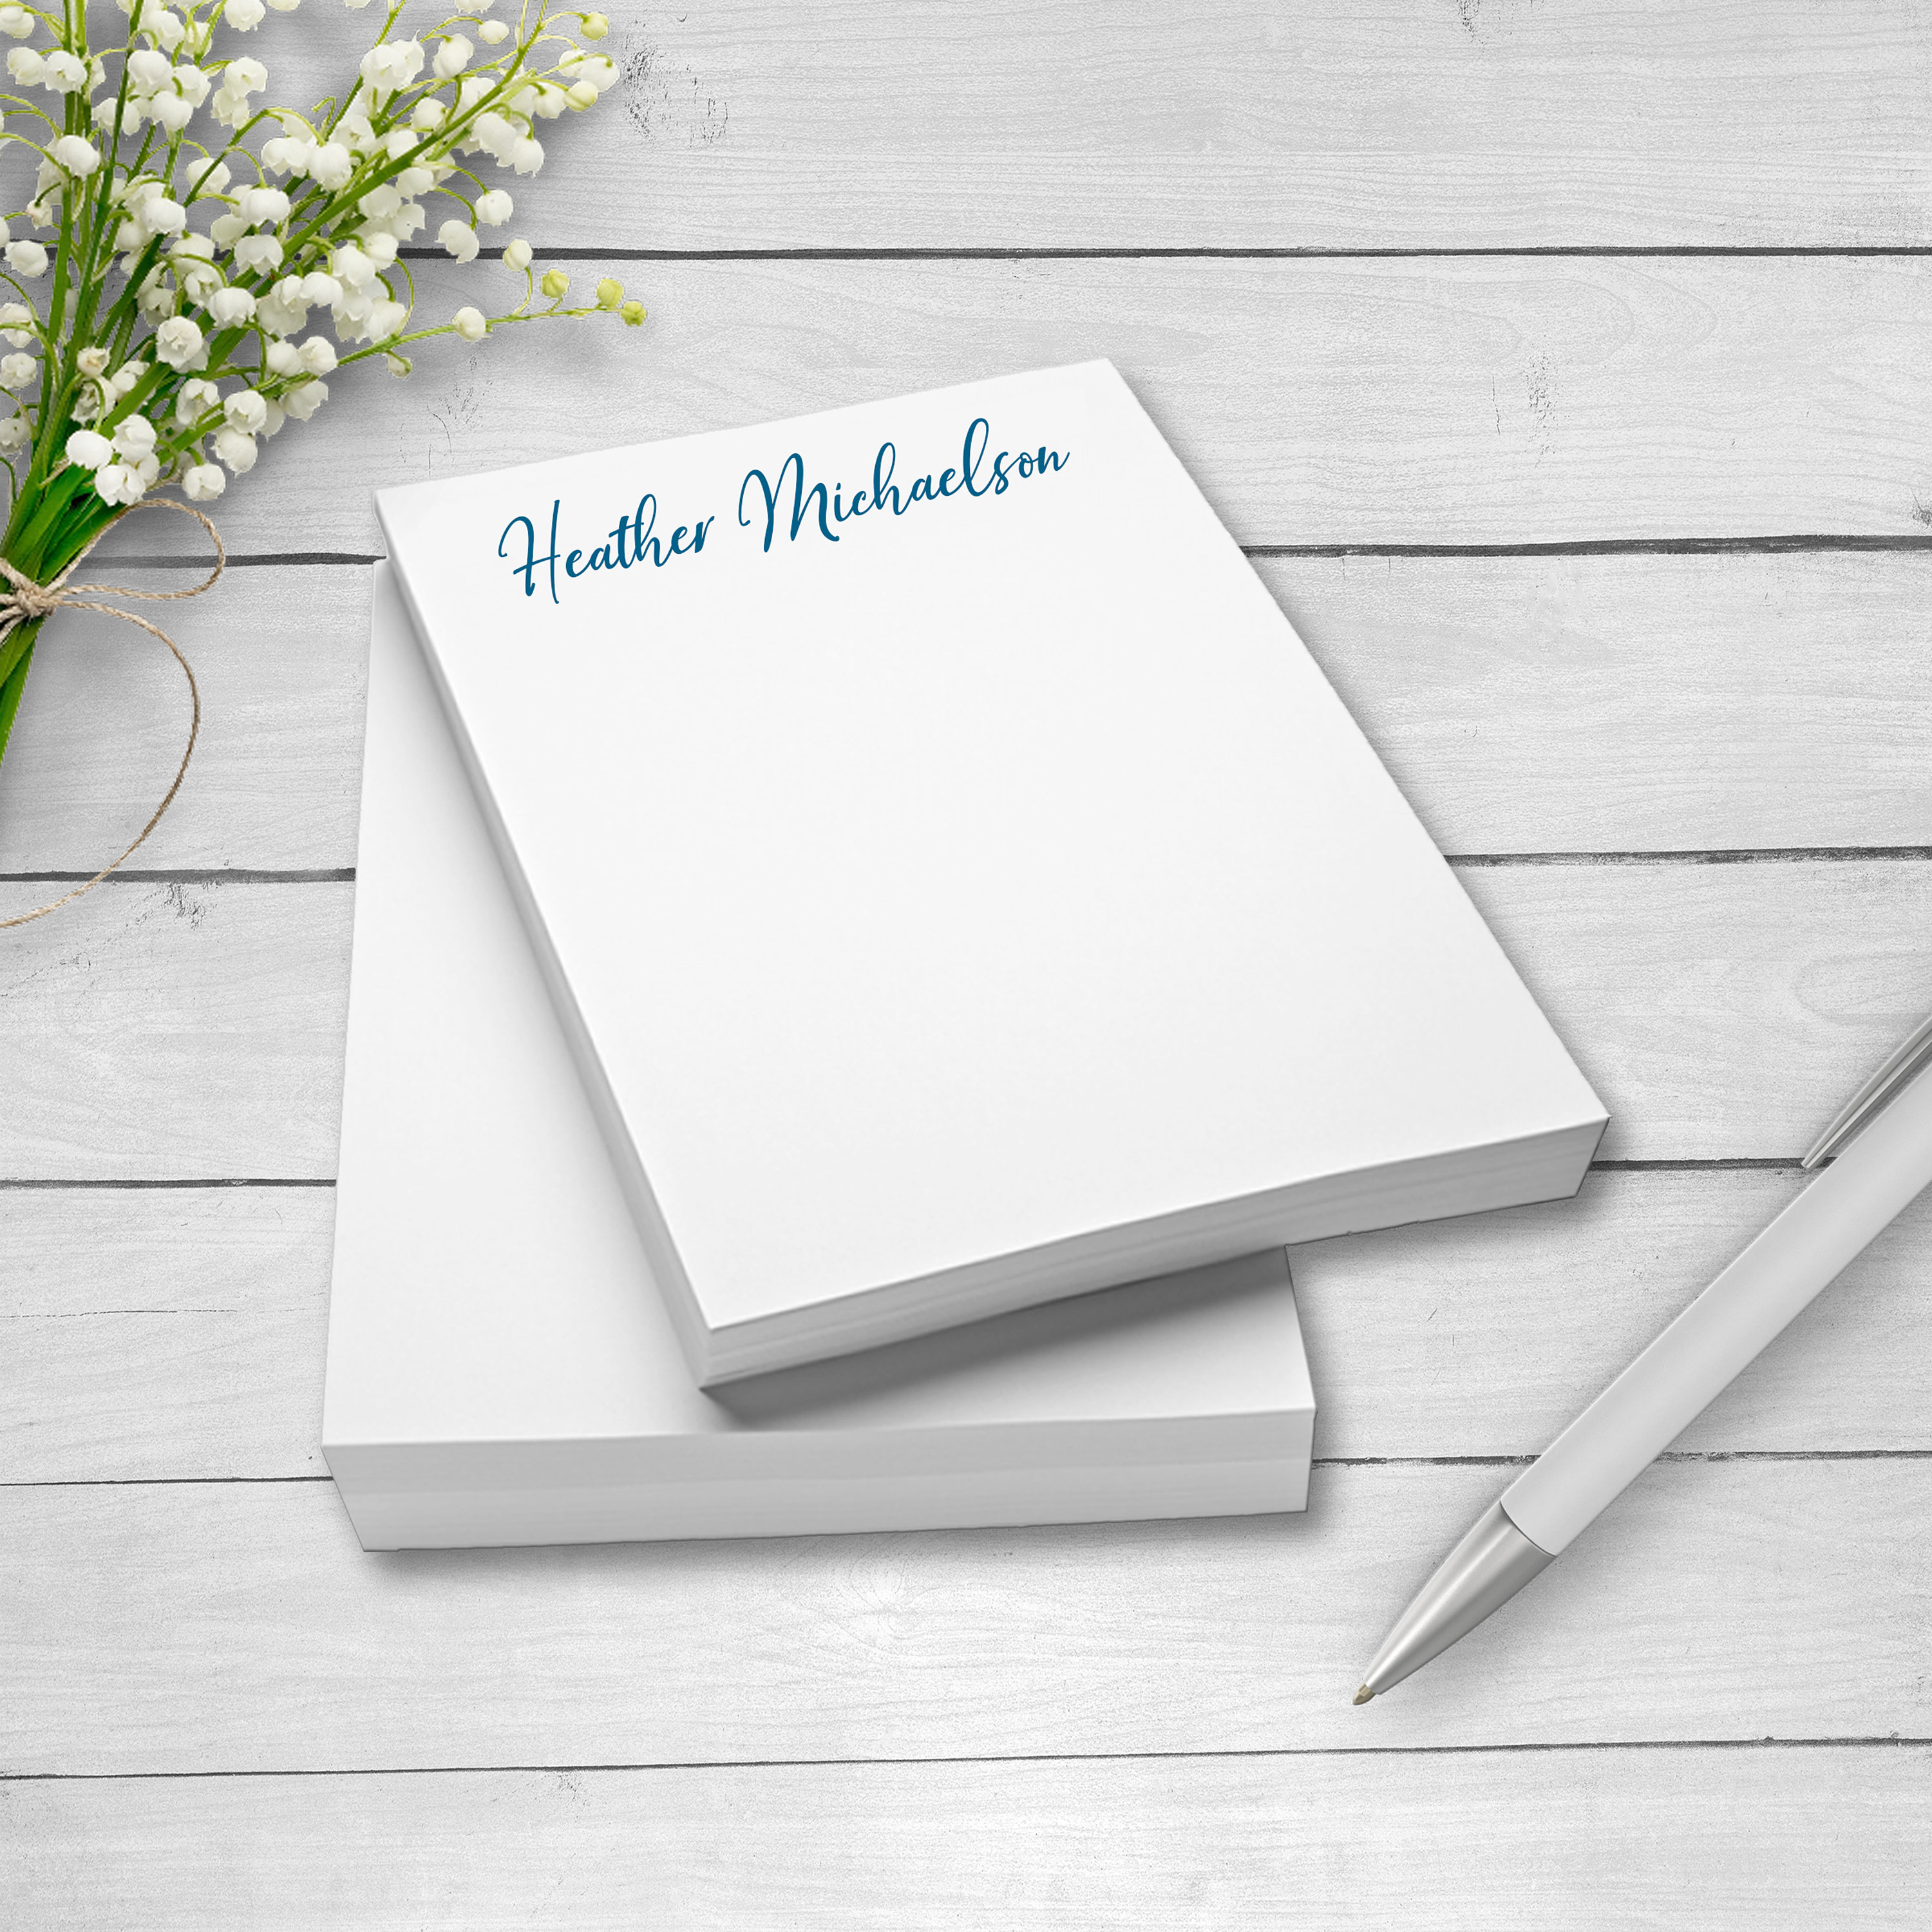 personalized note pads glued note pads personalized notepads